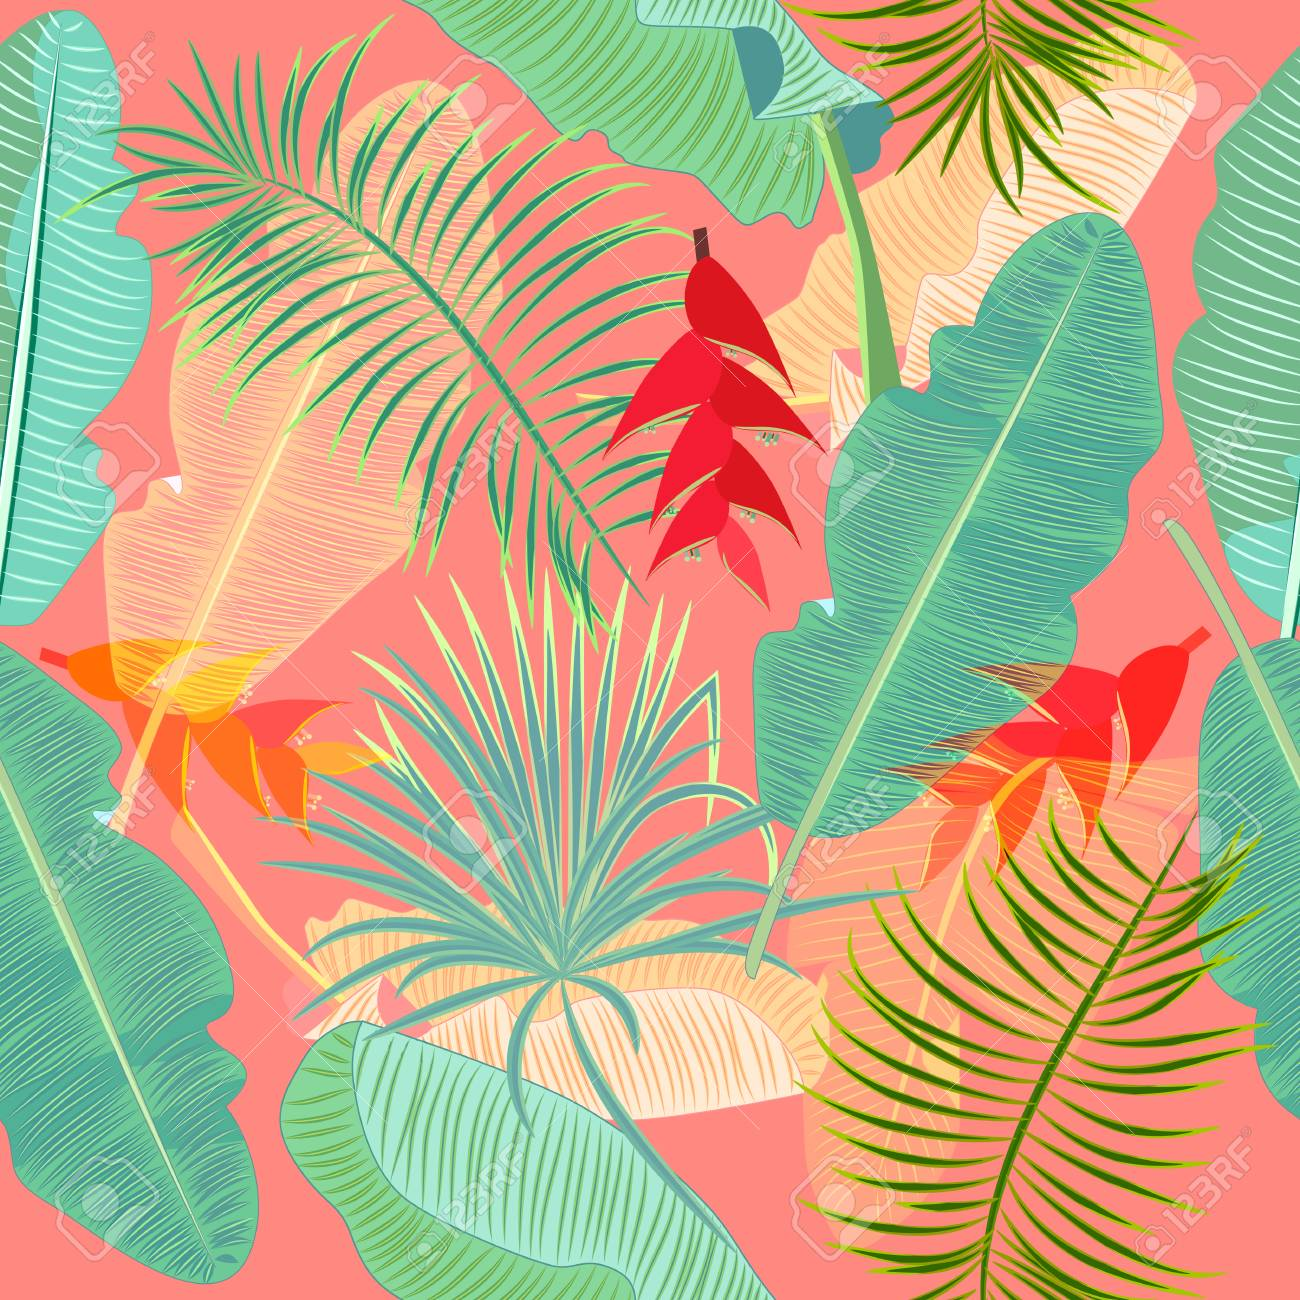 Seamless Pattern Of Exotic Jungle Plant Tropical Palm Leaves Royalty Free Cliparts Vectors And Stock Illustration Image 110001862 Leaves,tropical vector plant and more resources at freedesignfile.com. seamless pattern of exotic jungle plant tropical palm leaves